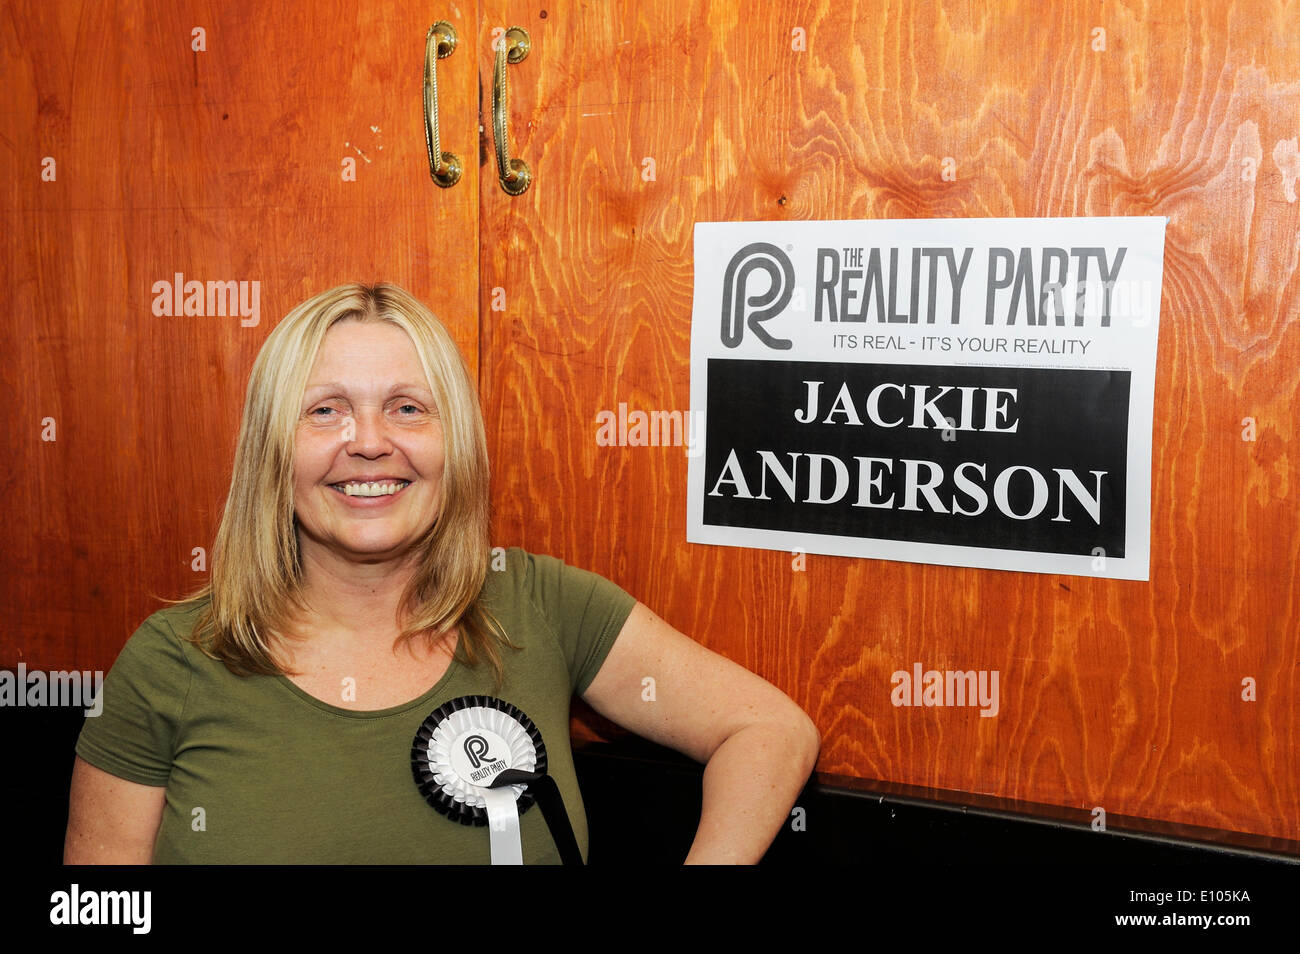 Irlam, Manchester, UK. 20th May 2014. Reality Party candidate, Jackie Anderson, stands beside one of her posters at a campaign meeting. Credit:  Dave Ellison/Alamy Live News - Stock Image